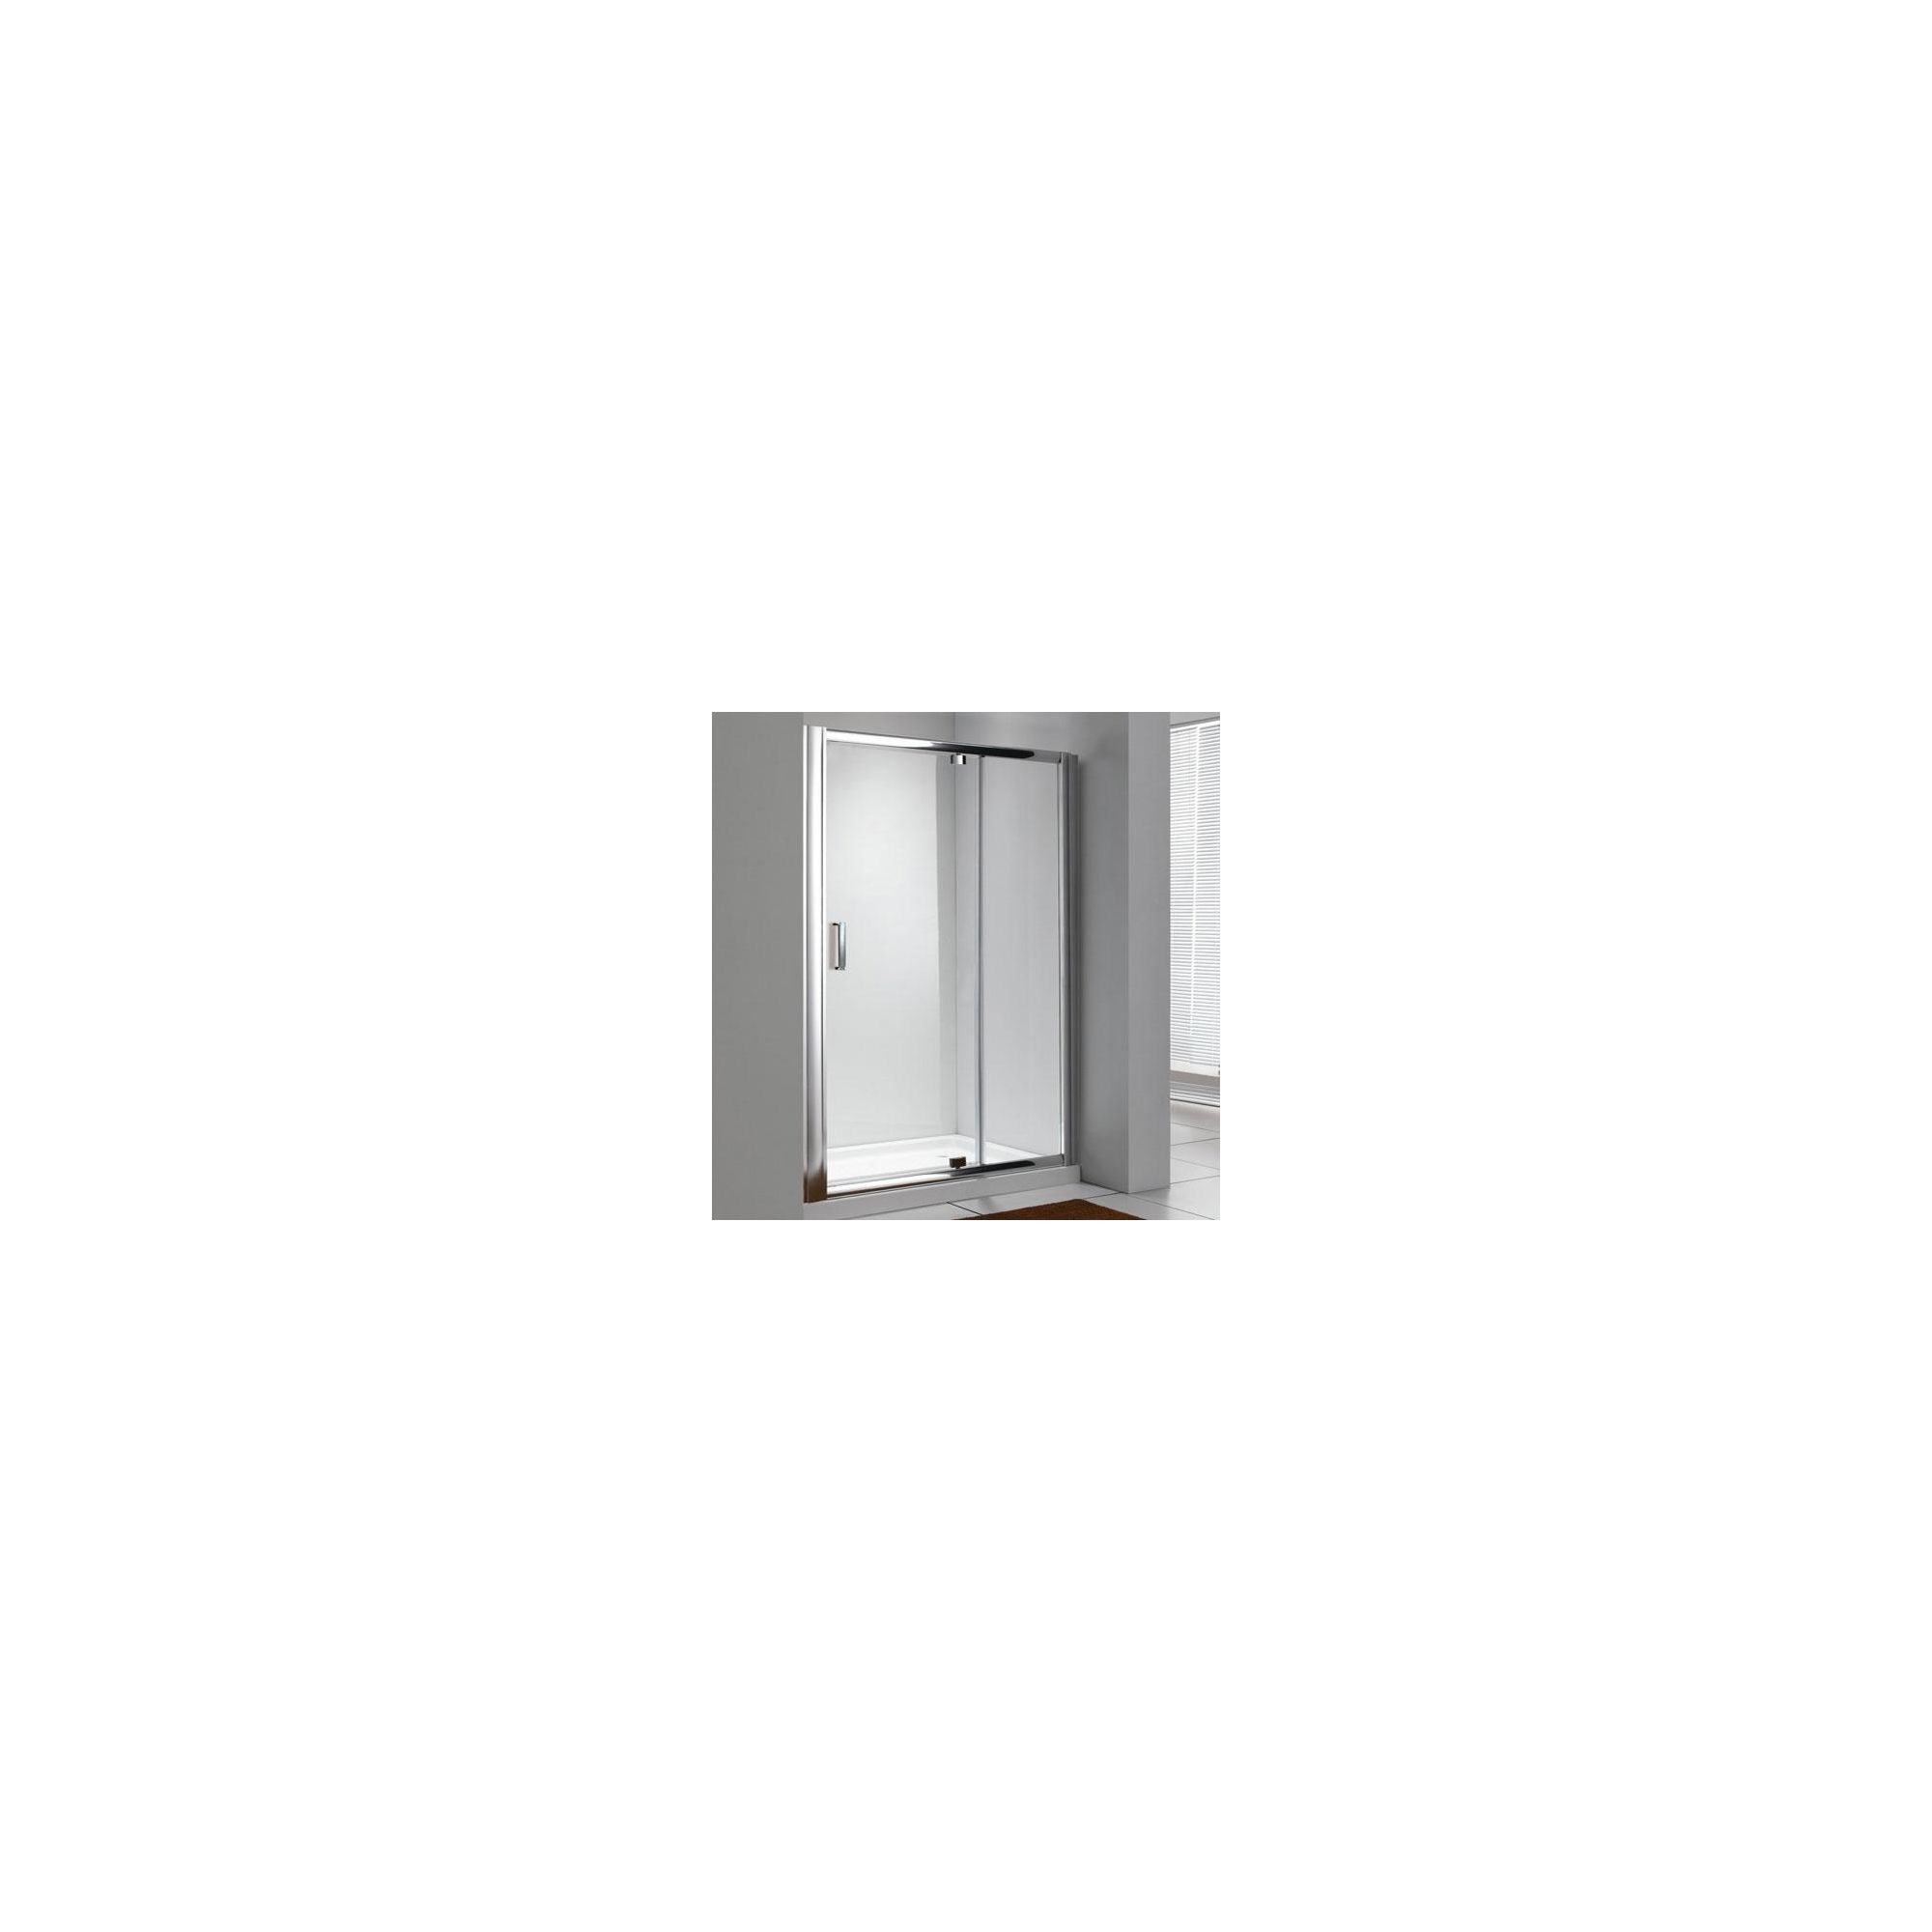 Duchy Style Pivot Door Shower Enclosure, 1000mm x 800mm, 6mm Glass, Low Profile Tray at Tesco Direct